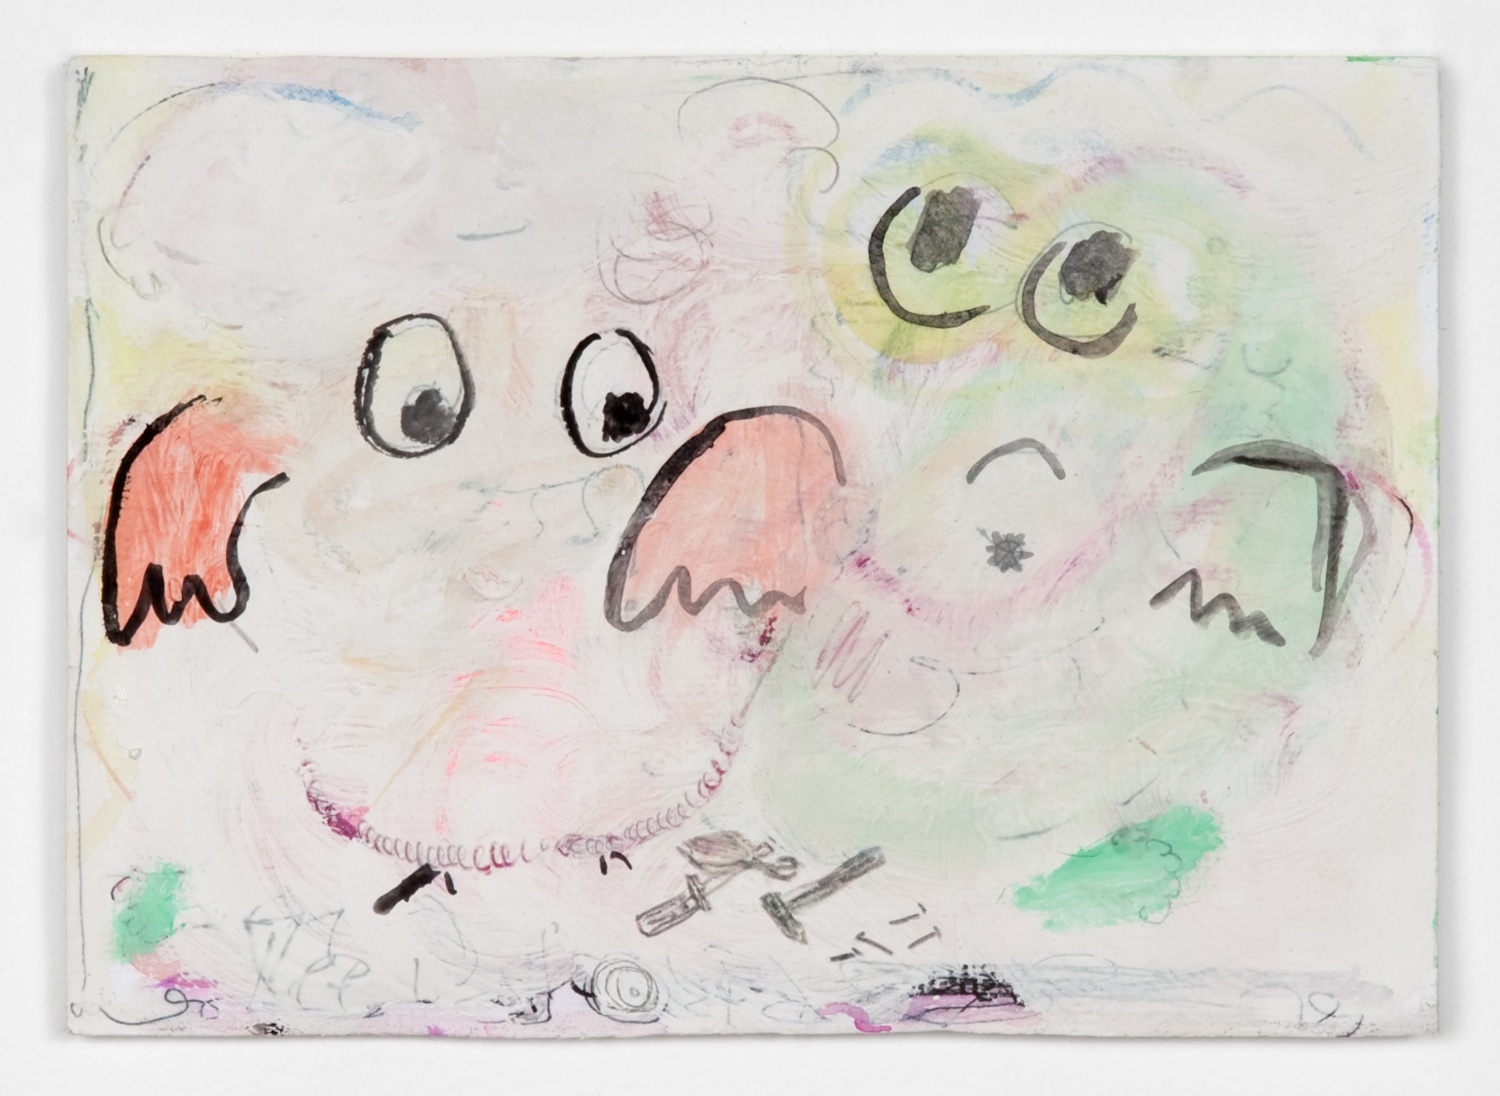 Helena Huneke  O.T.  2012 Gouache, watercolor, and acrylic on paper 5 ⅞h x 8 ¼w in HH006